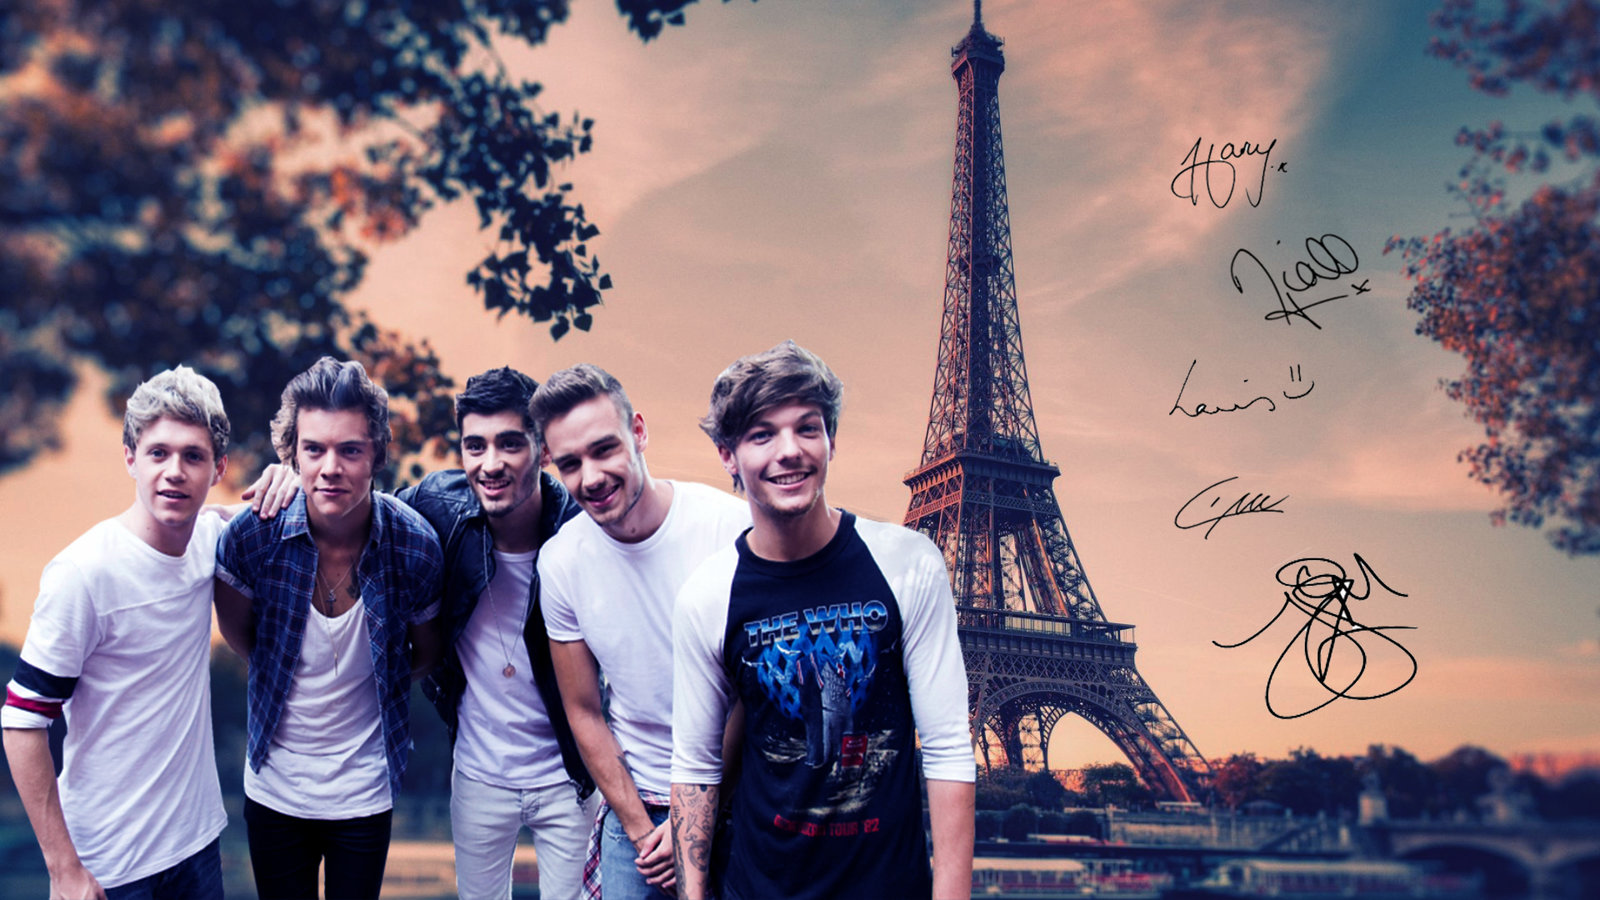 HQ One Direction Wallpaper